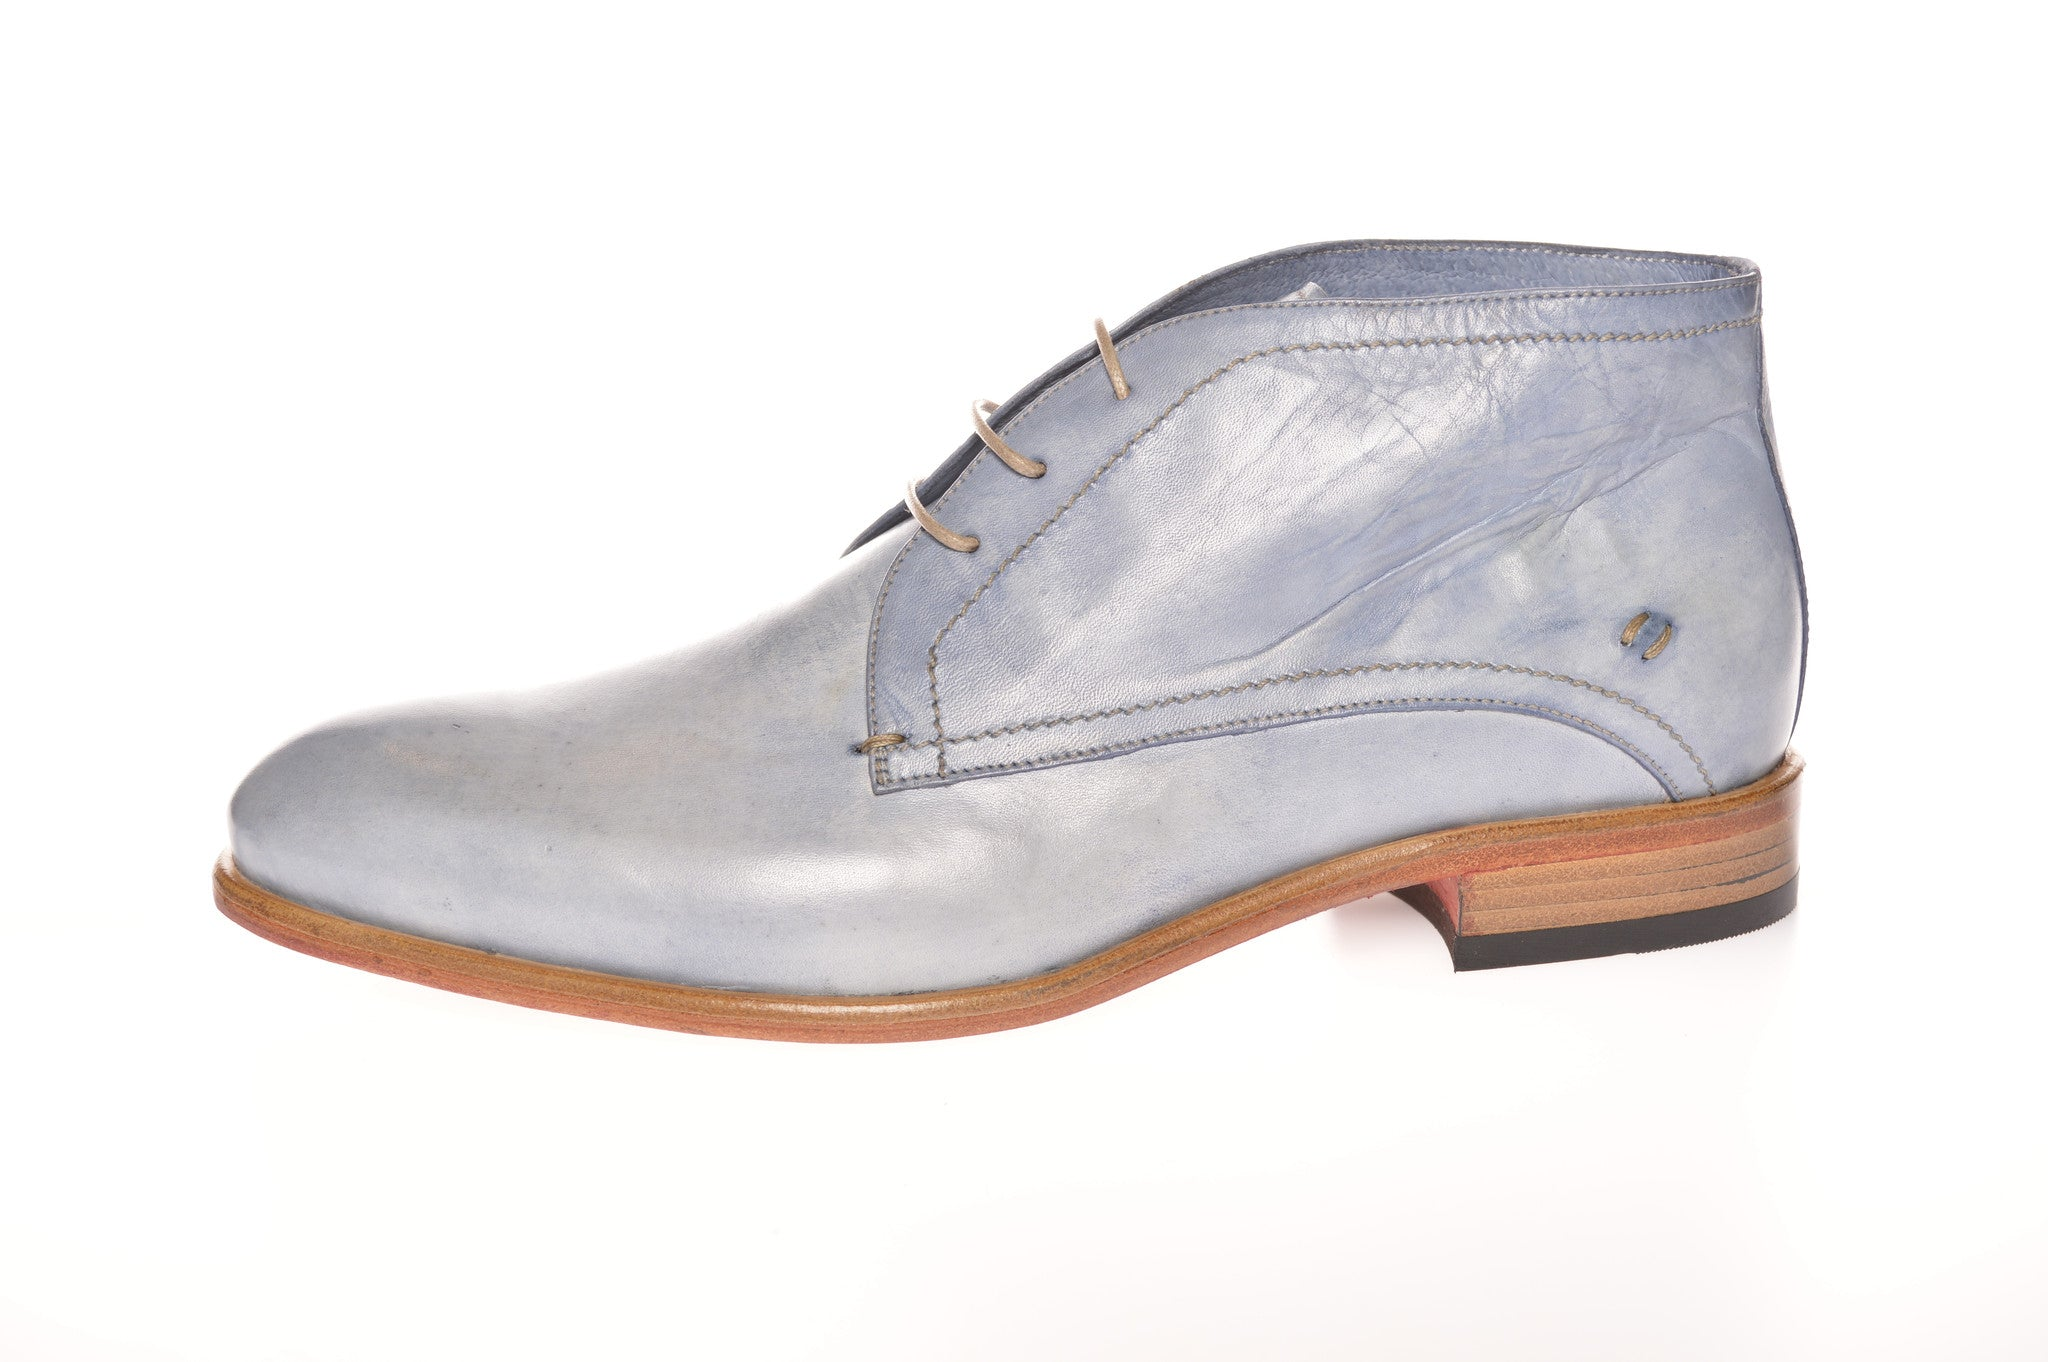 LORENZI Women Shoes / CRUST ACQUA